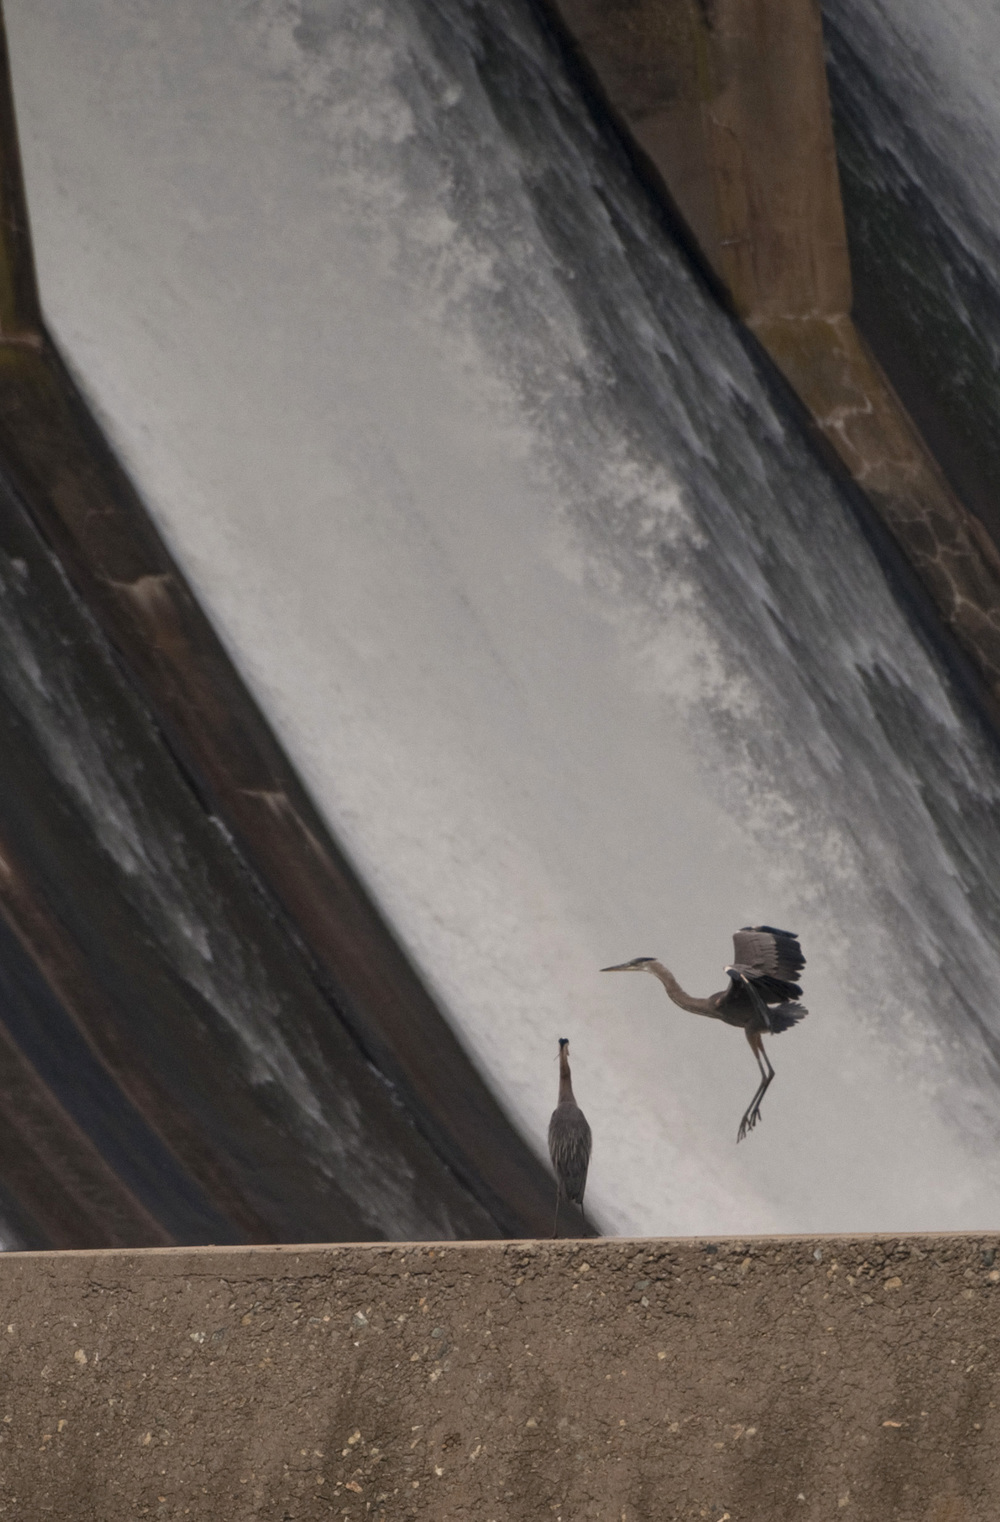 heron lands on Conowingo Dam